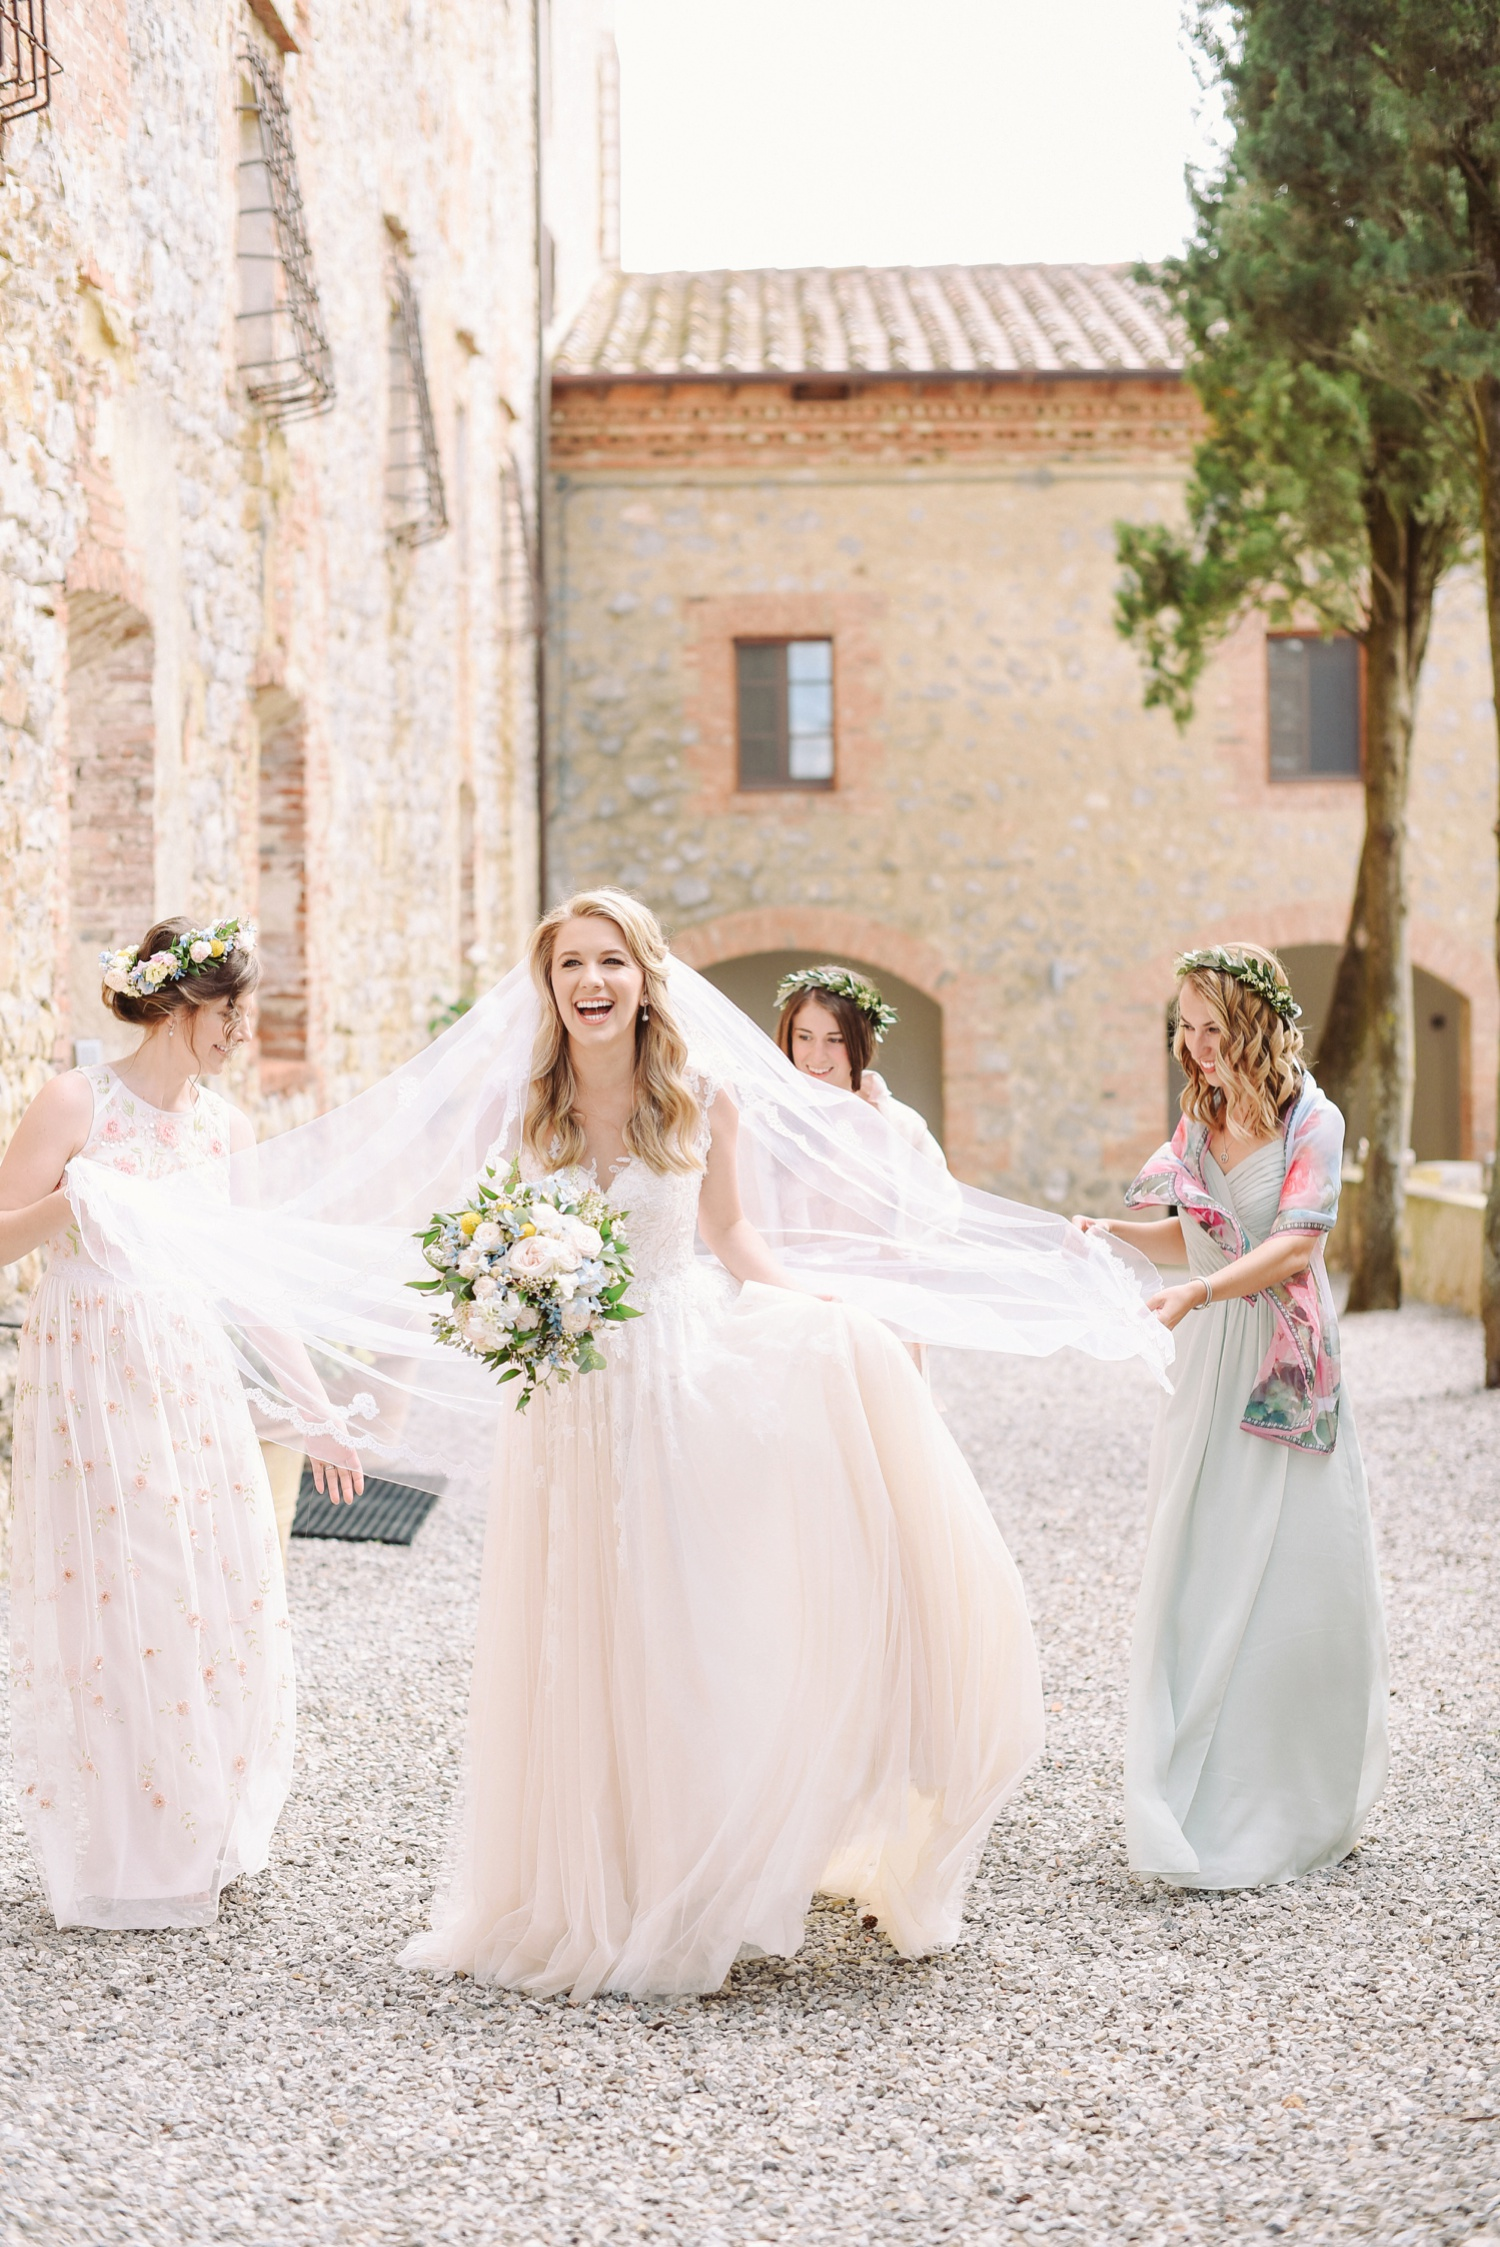 landvphotography_wedding_photographer_tuscany_0032.jpg